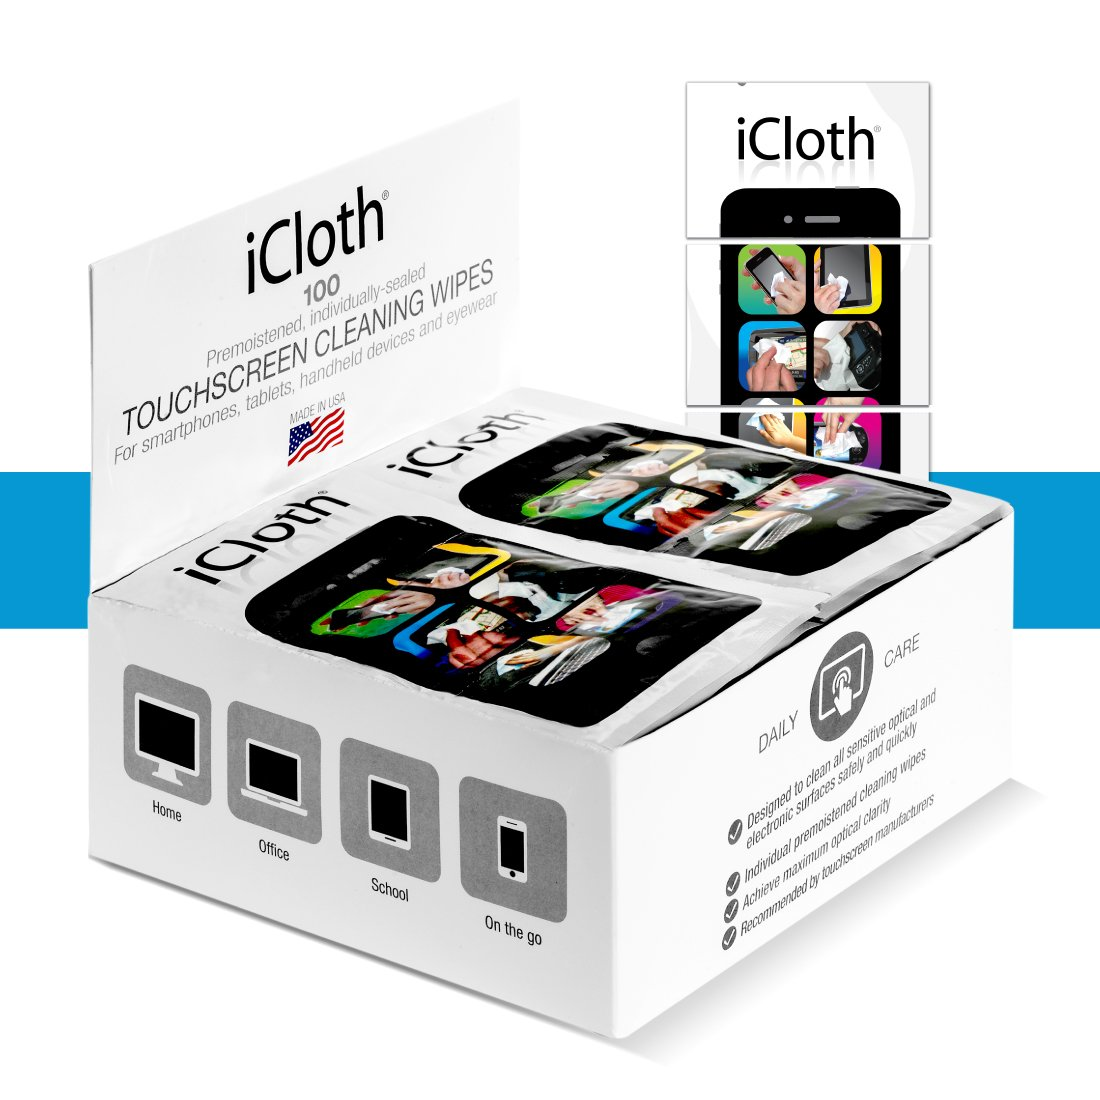 iCloth Small-Screen and Lens Cleaner | 100 cleaning wipes pre-moistened and individually sealed - Apply the promo and get a BONUS 10 Pack of our new XL Wipes FREE